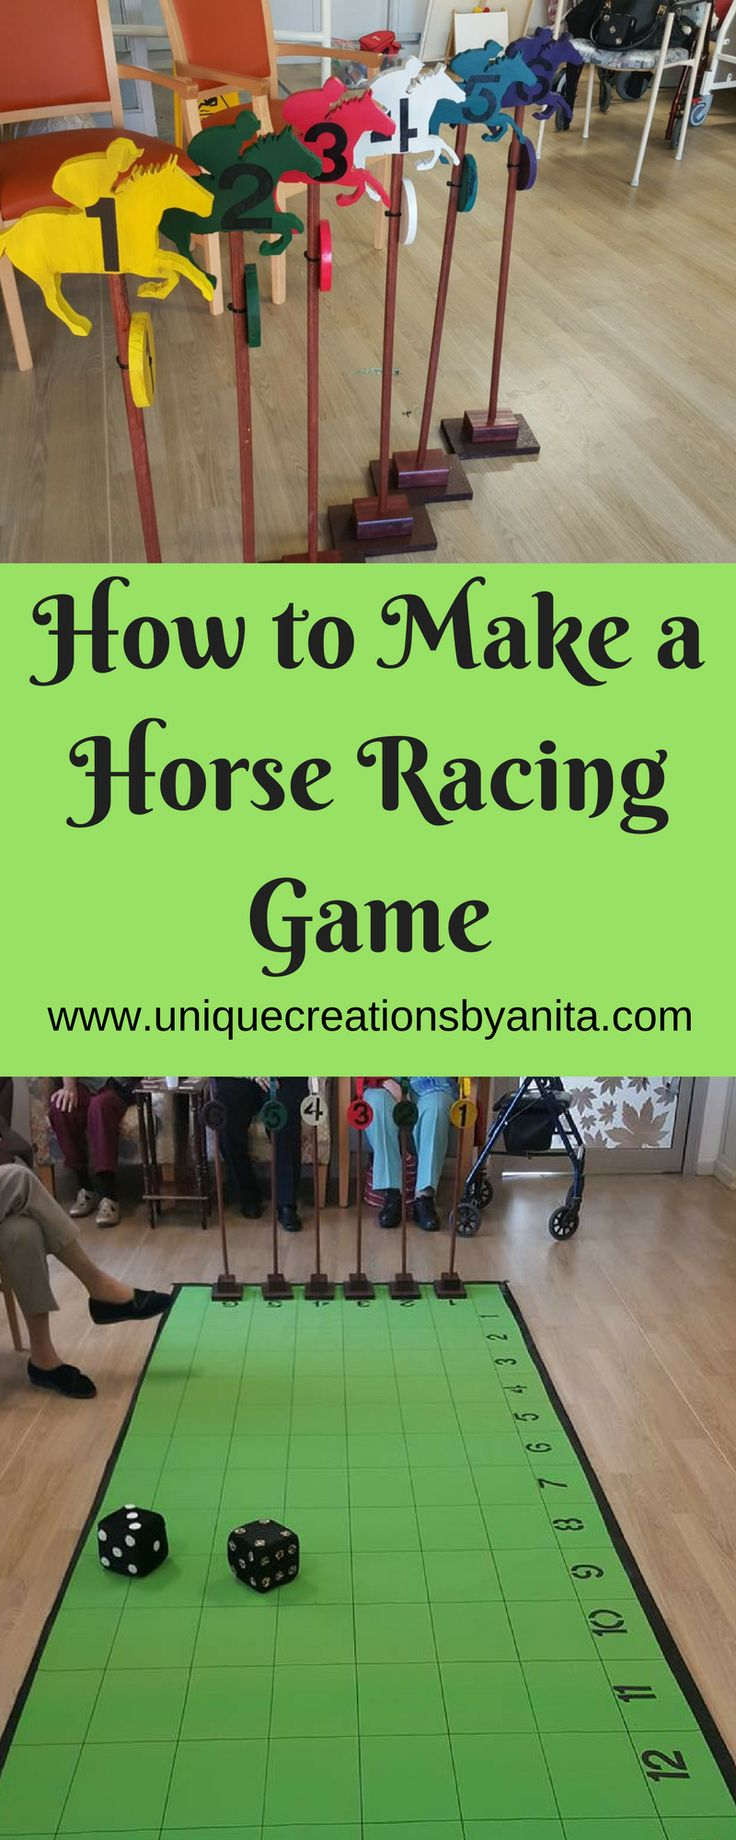 How to make a Horse Racing Game – Unique Creations By Anita